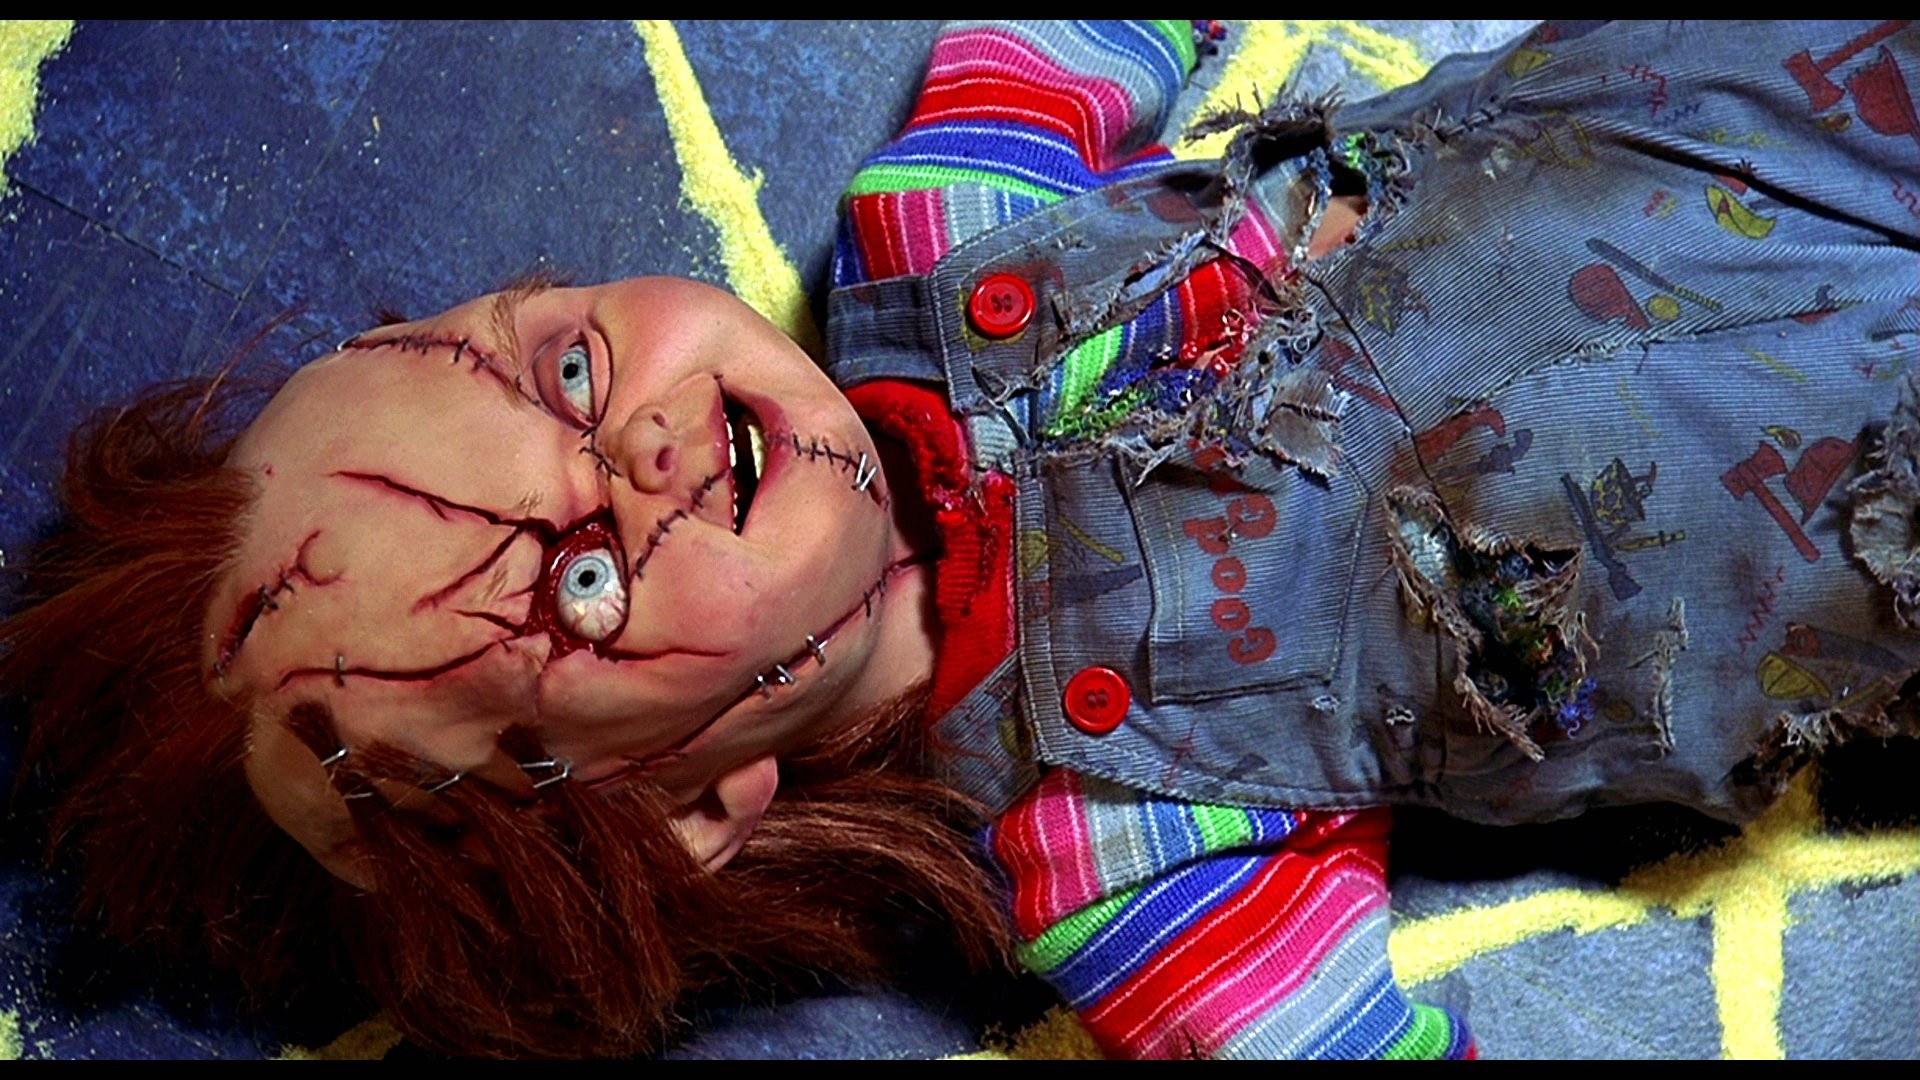 1920x1080 CHILDS PLAY chucky dark horror creepy scary (13) wallpaper |  |  235510 | WallpaperUP